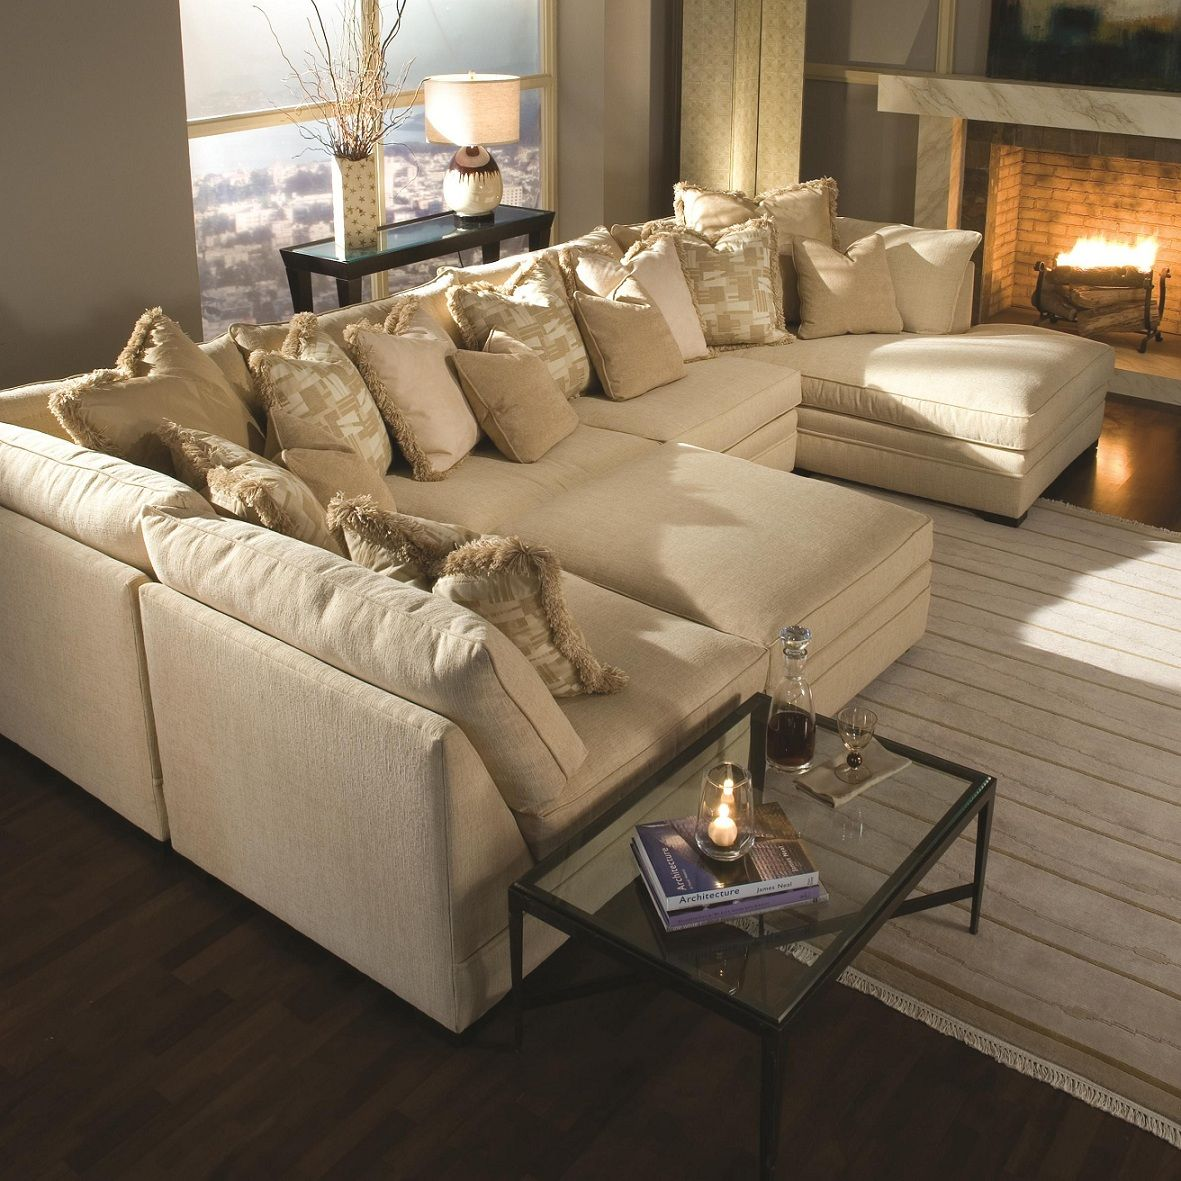 Cool Unique Extra Large Sectional Sofas With Chaise 24 For Your